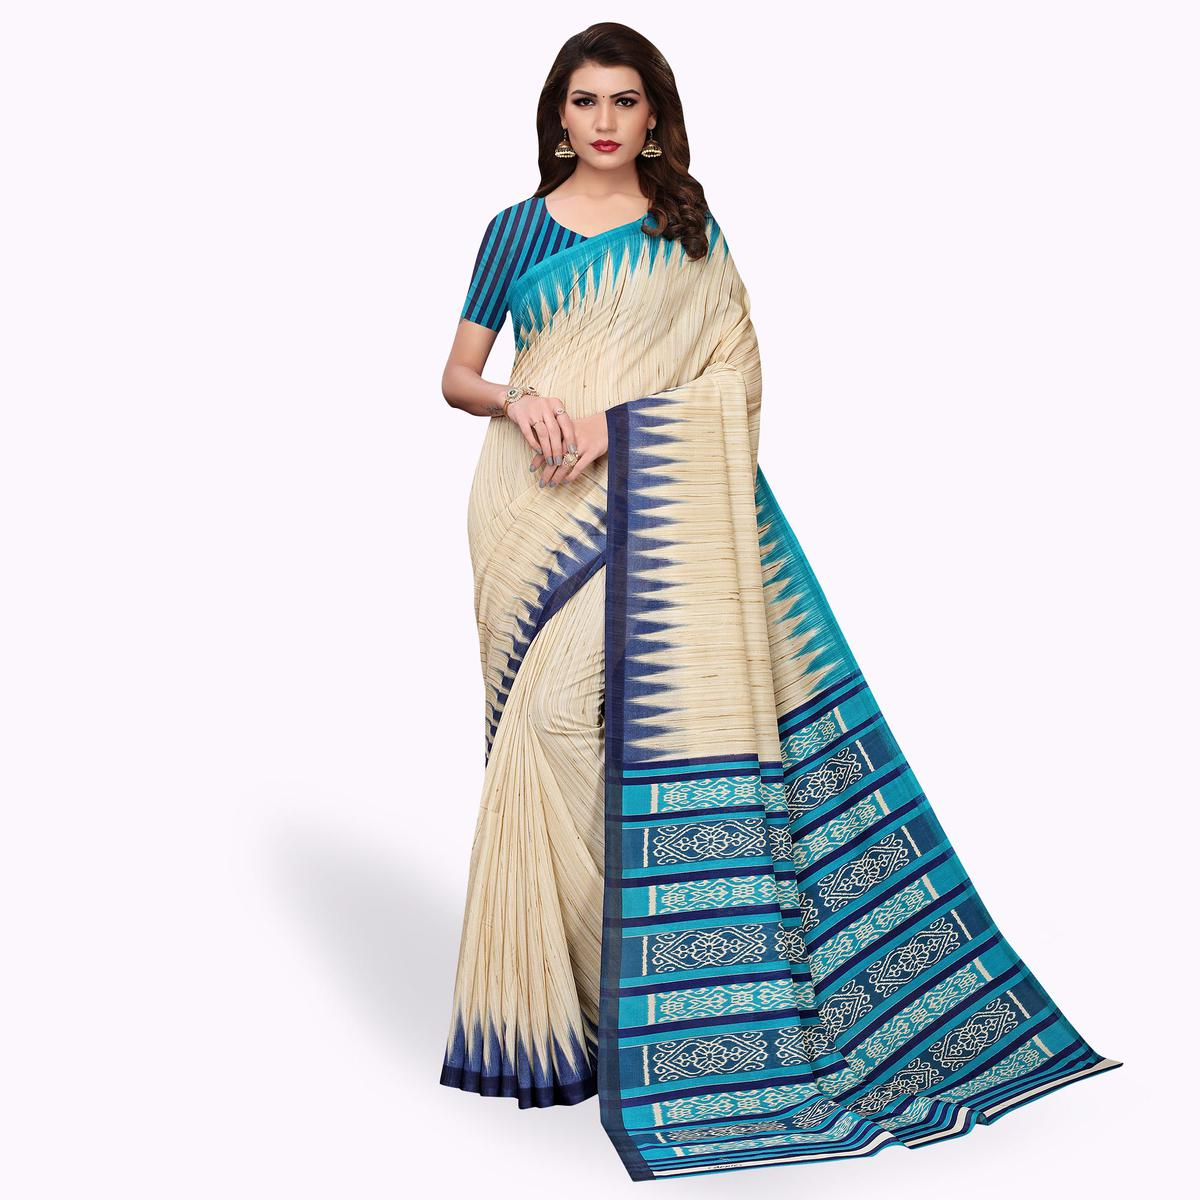 Ravishing Beige - Sky Blue Colored Casual Wear Printed Art Silk Saree